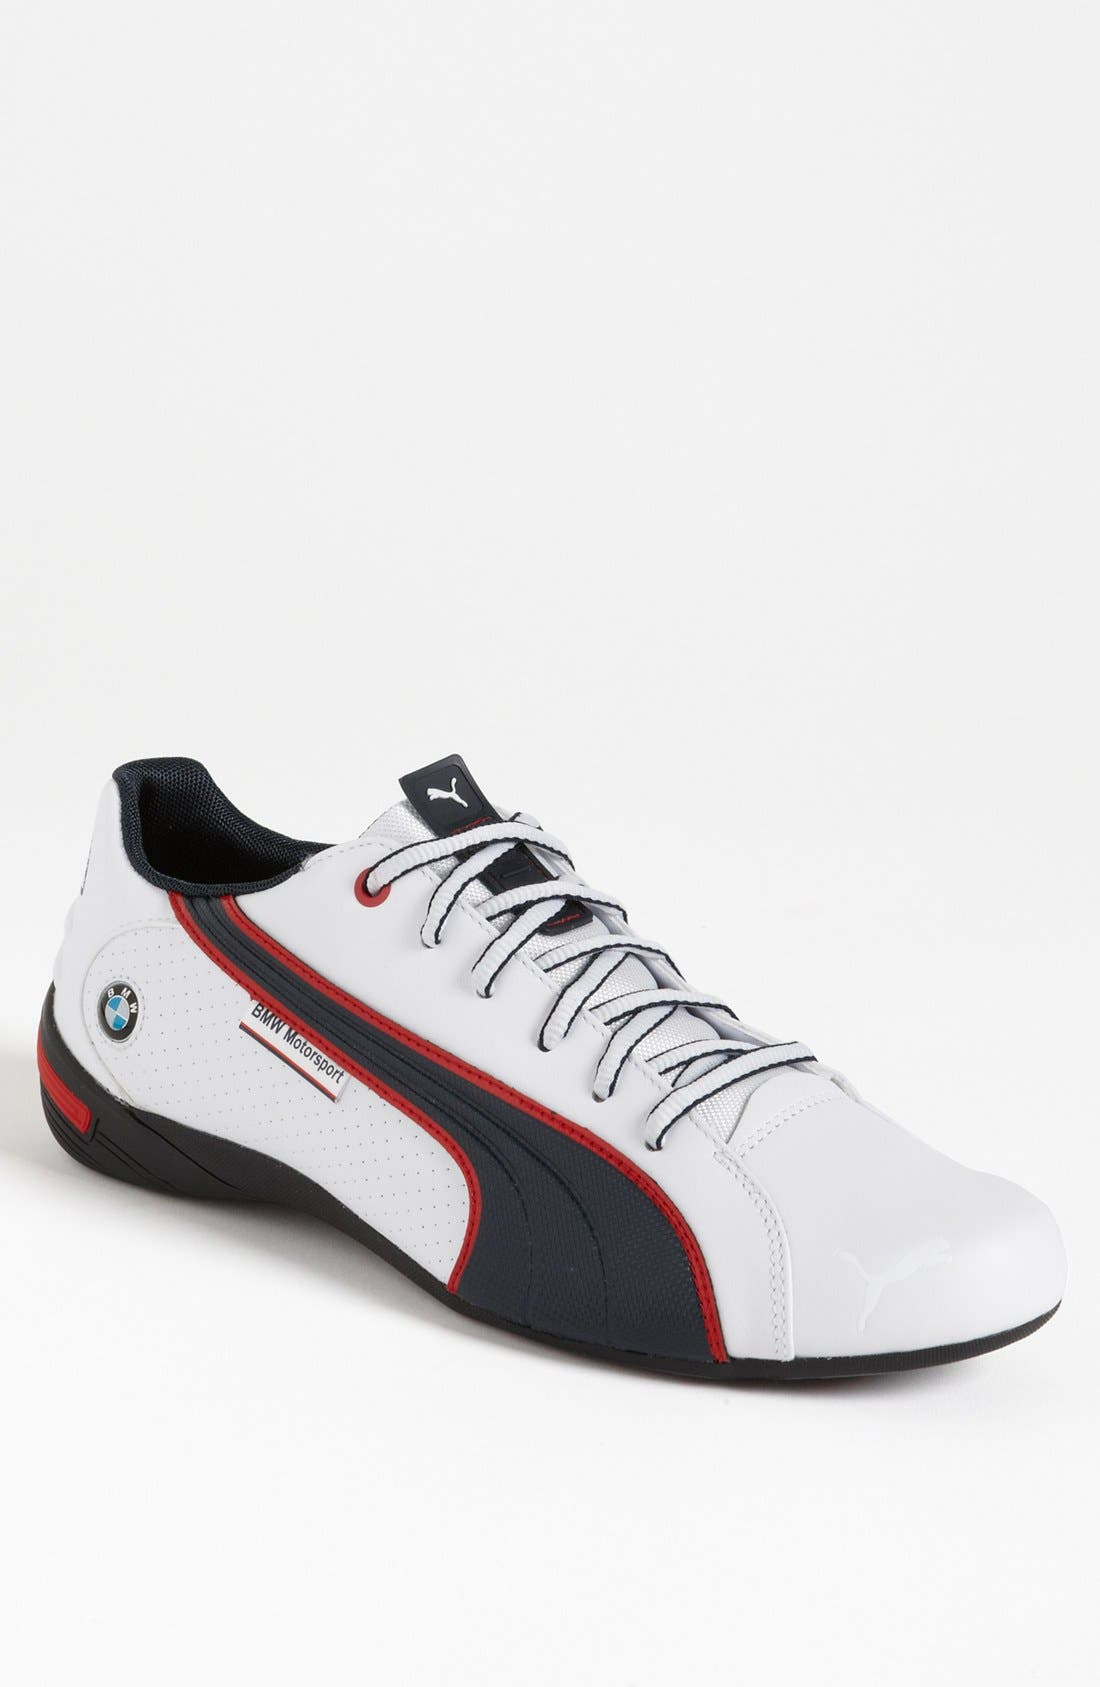 Main Image - PUMA 'BMW Nyter NM' Sneaker (Men)